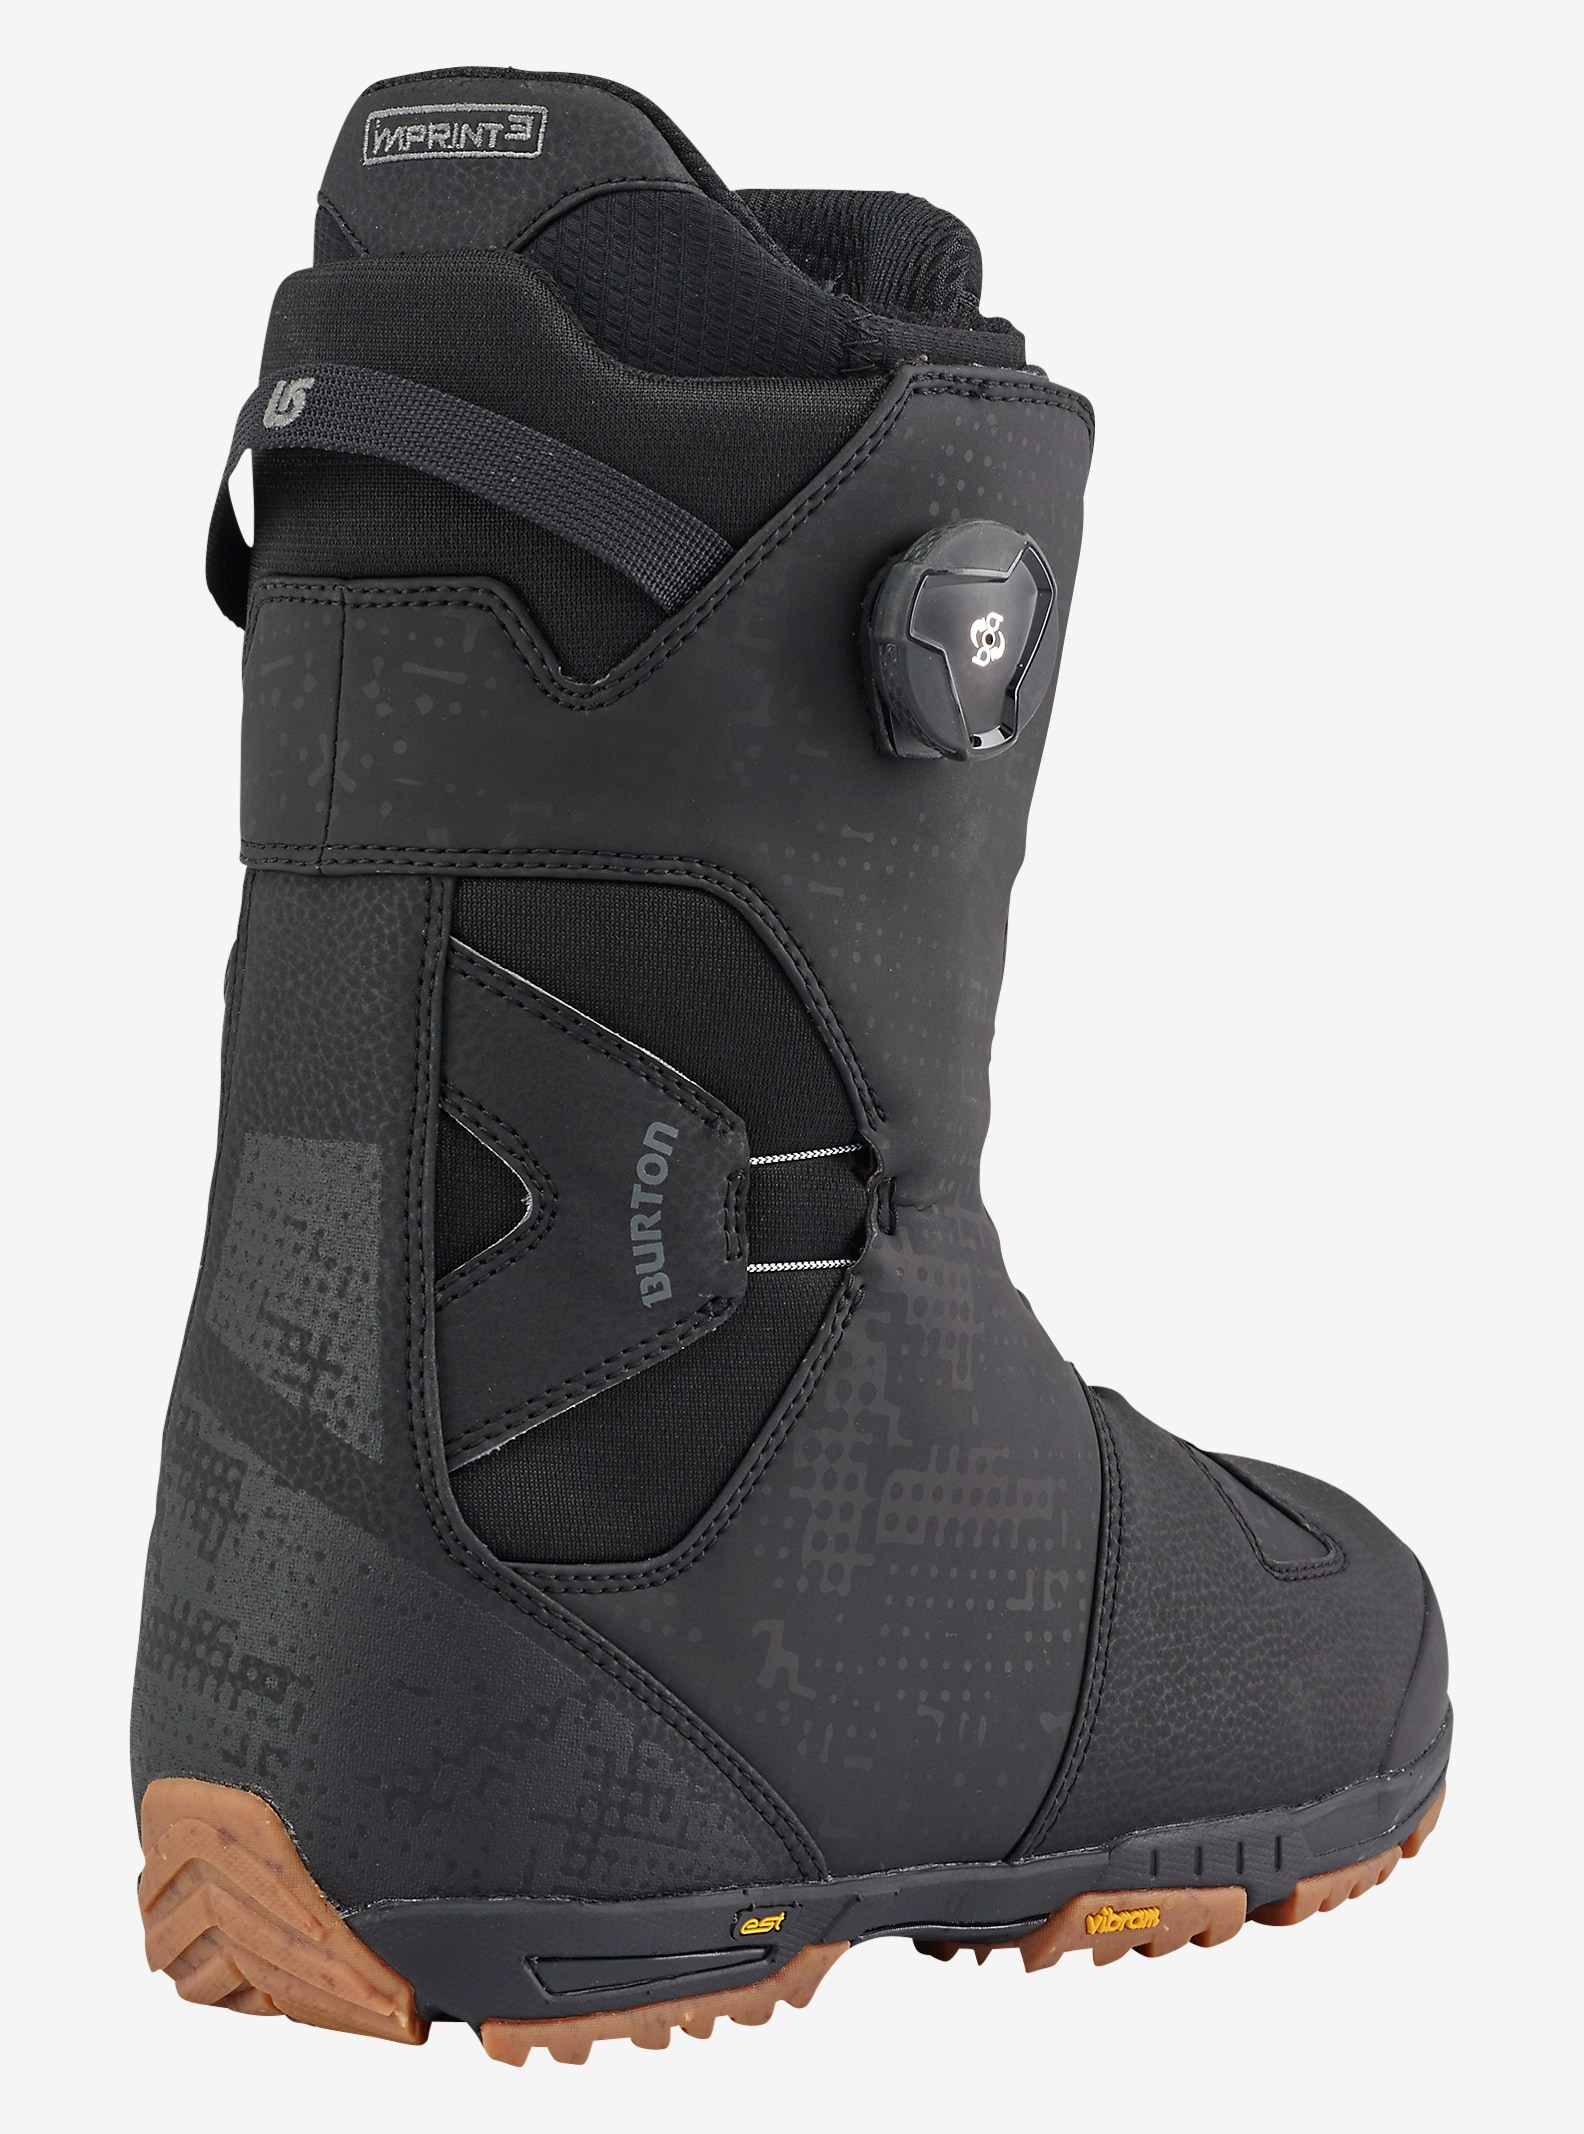 Burton Photon Boa® Snowboard Boot shown in Black / Gum